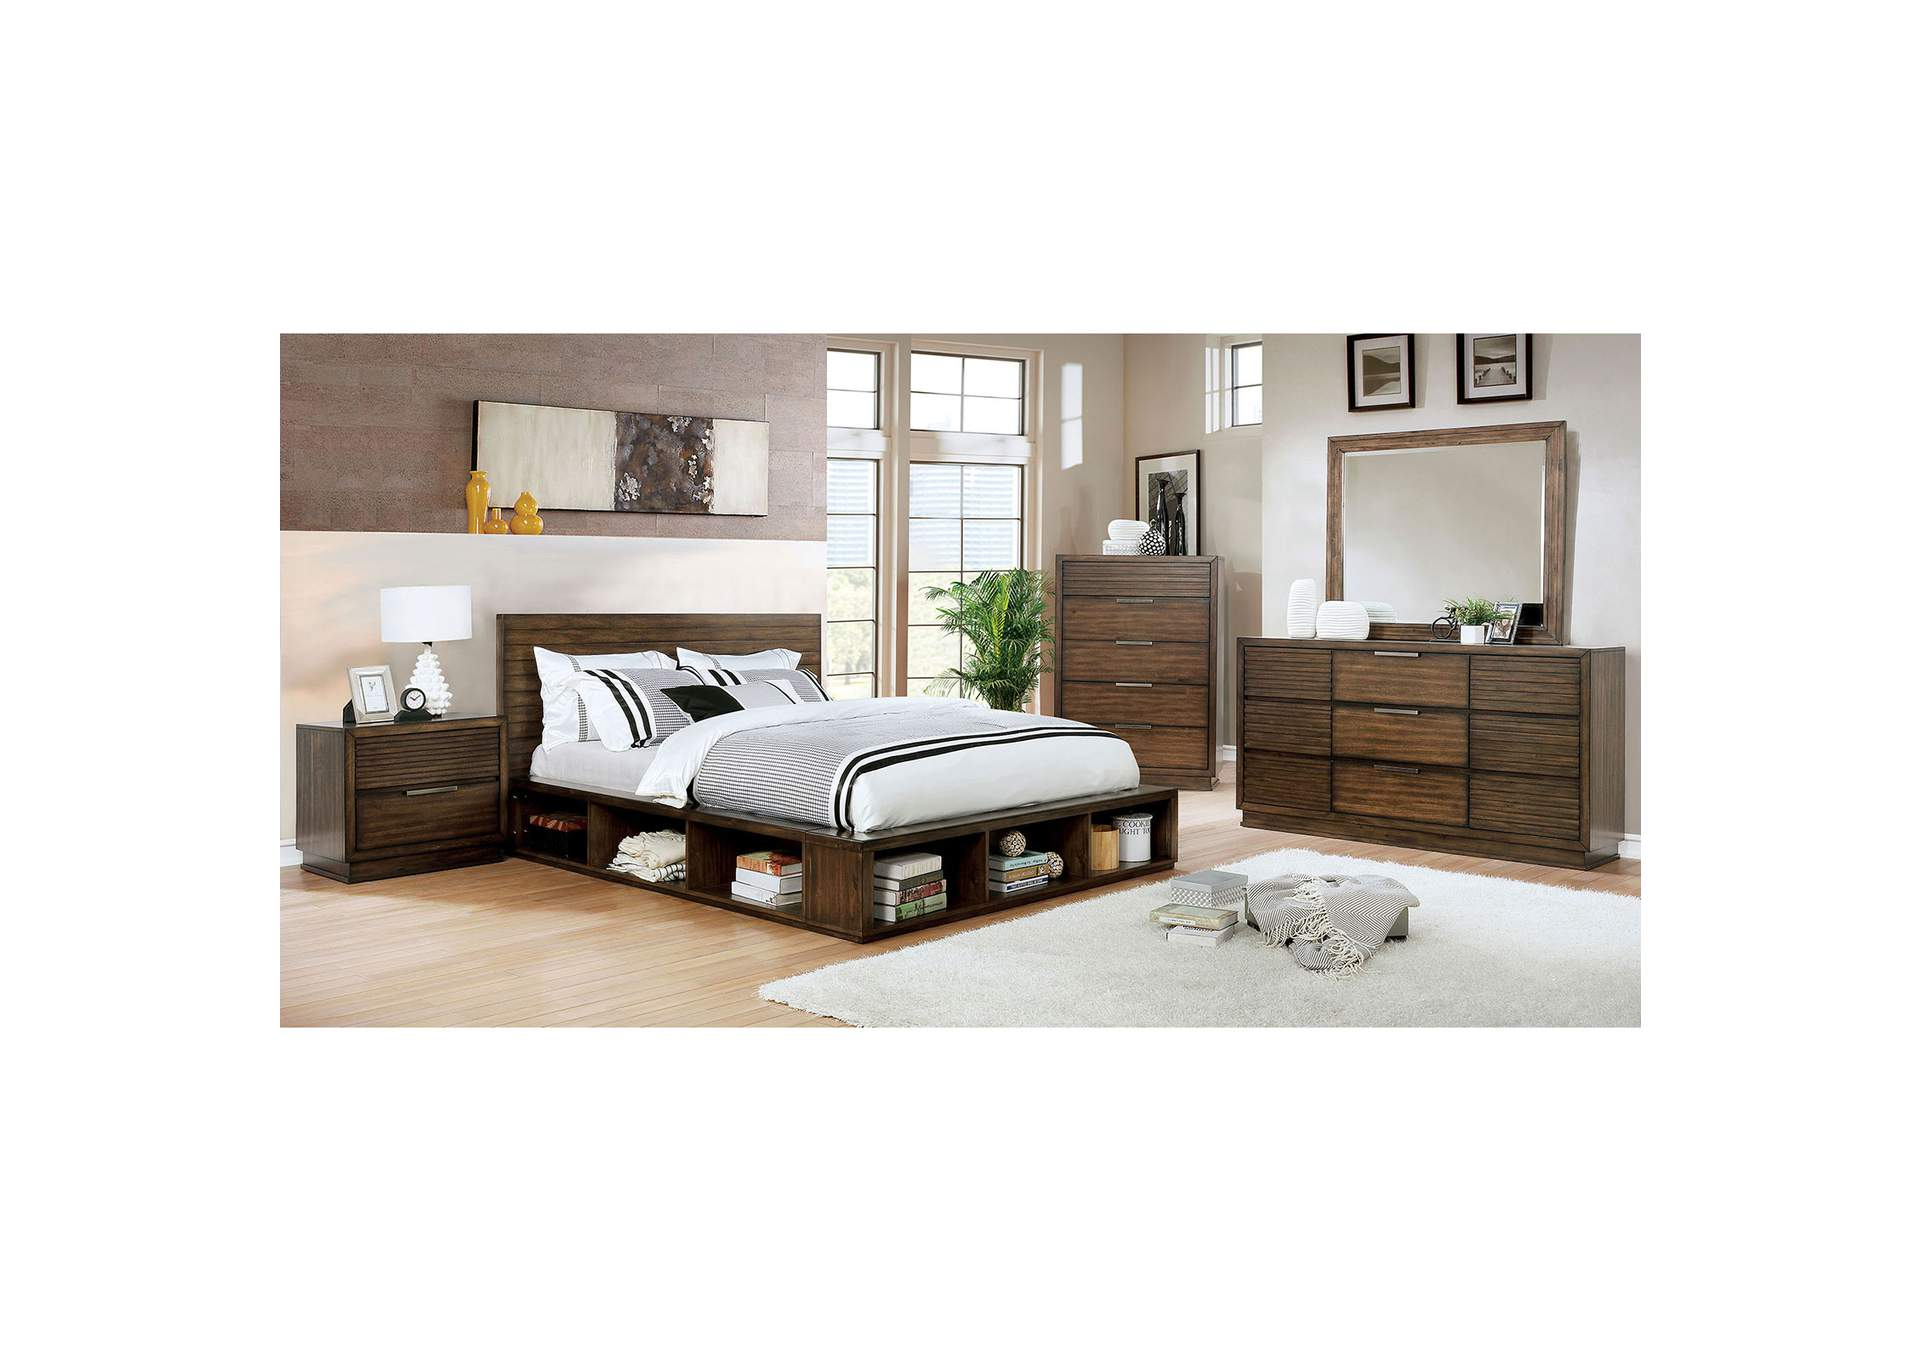 Tolna Brown Eastern King Storage Platform Bed,Furniture of America